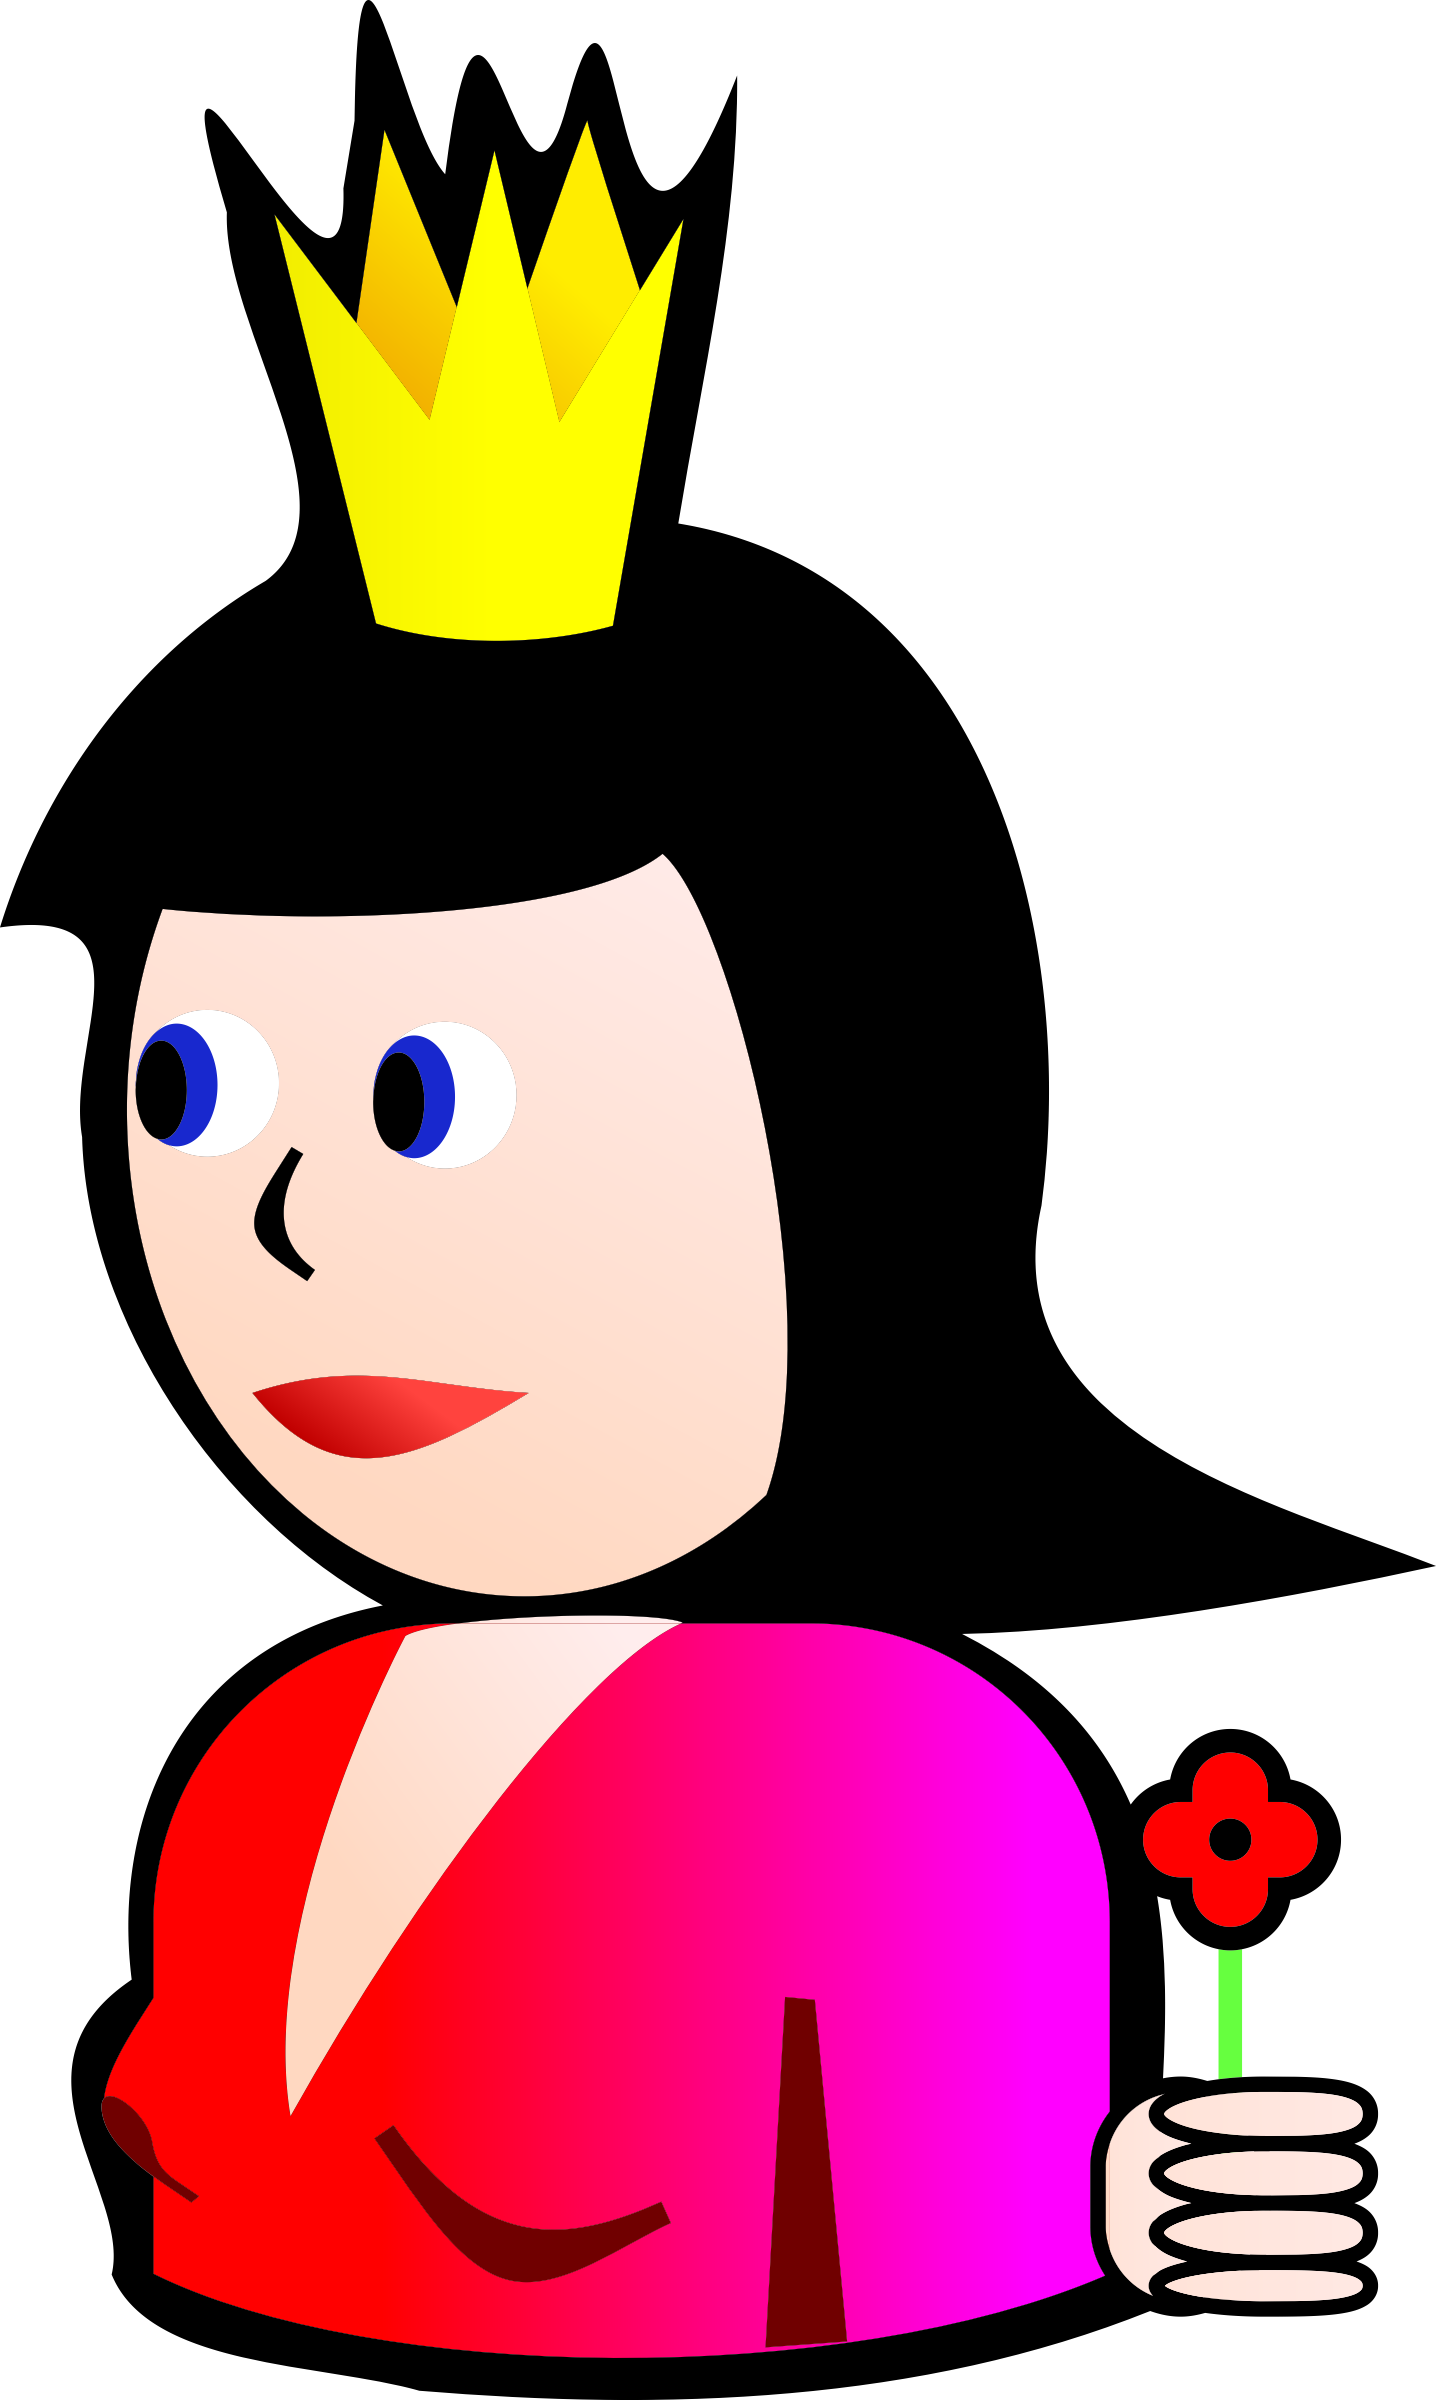 Queen of Hearts by seanujones